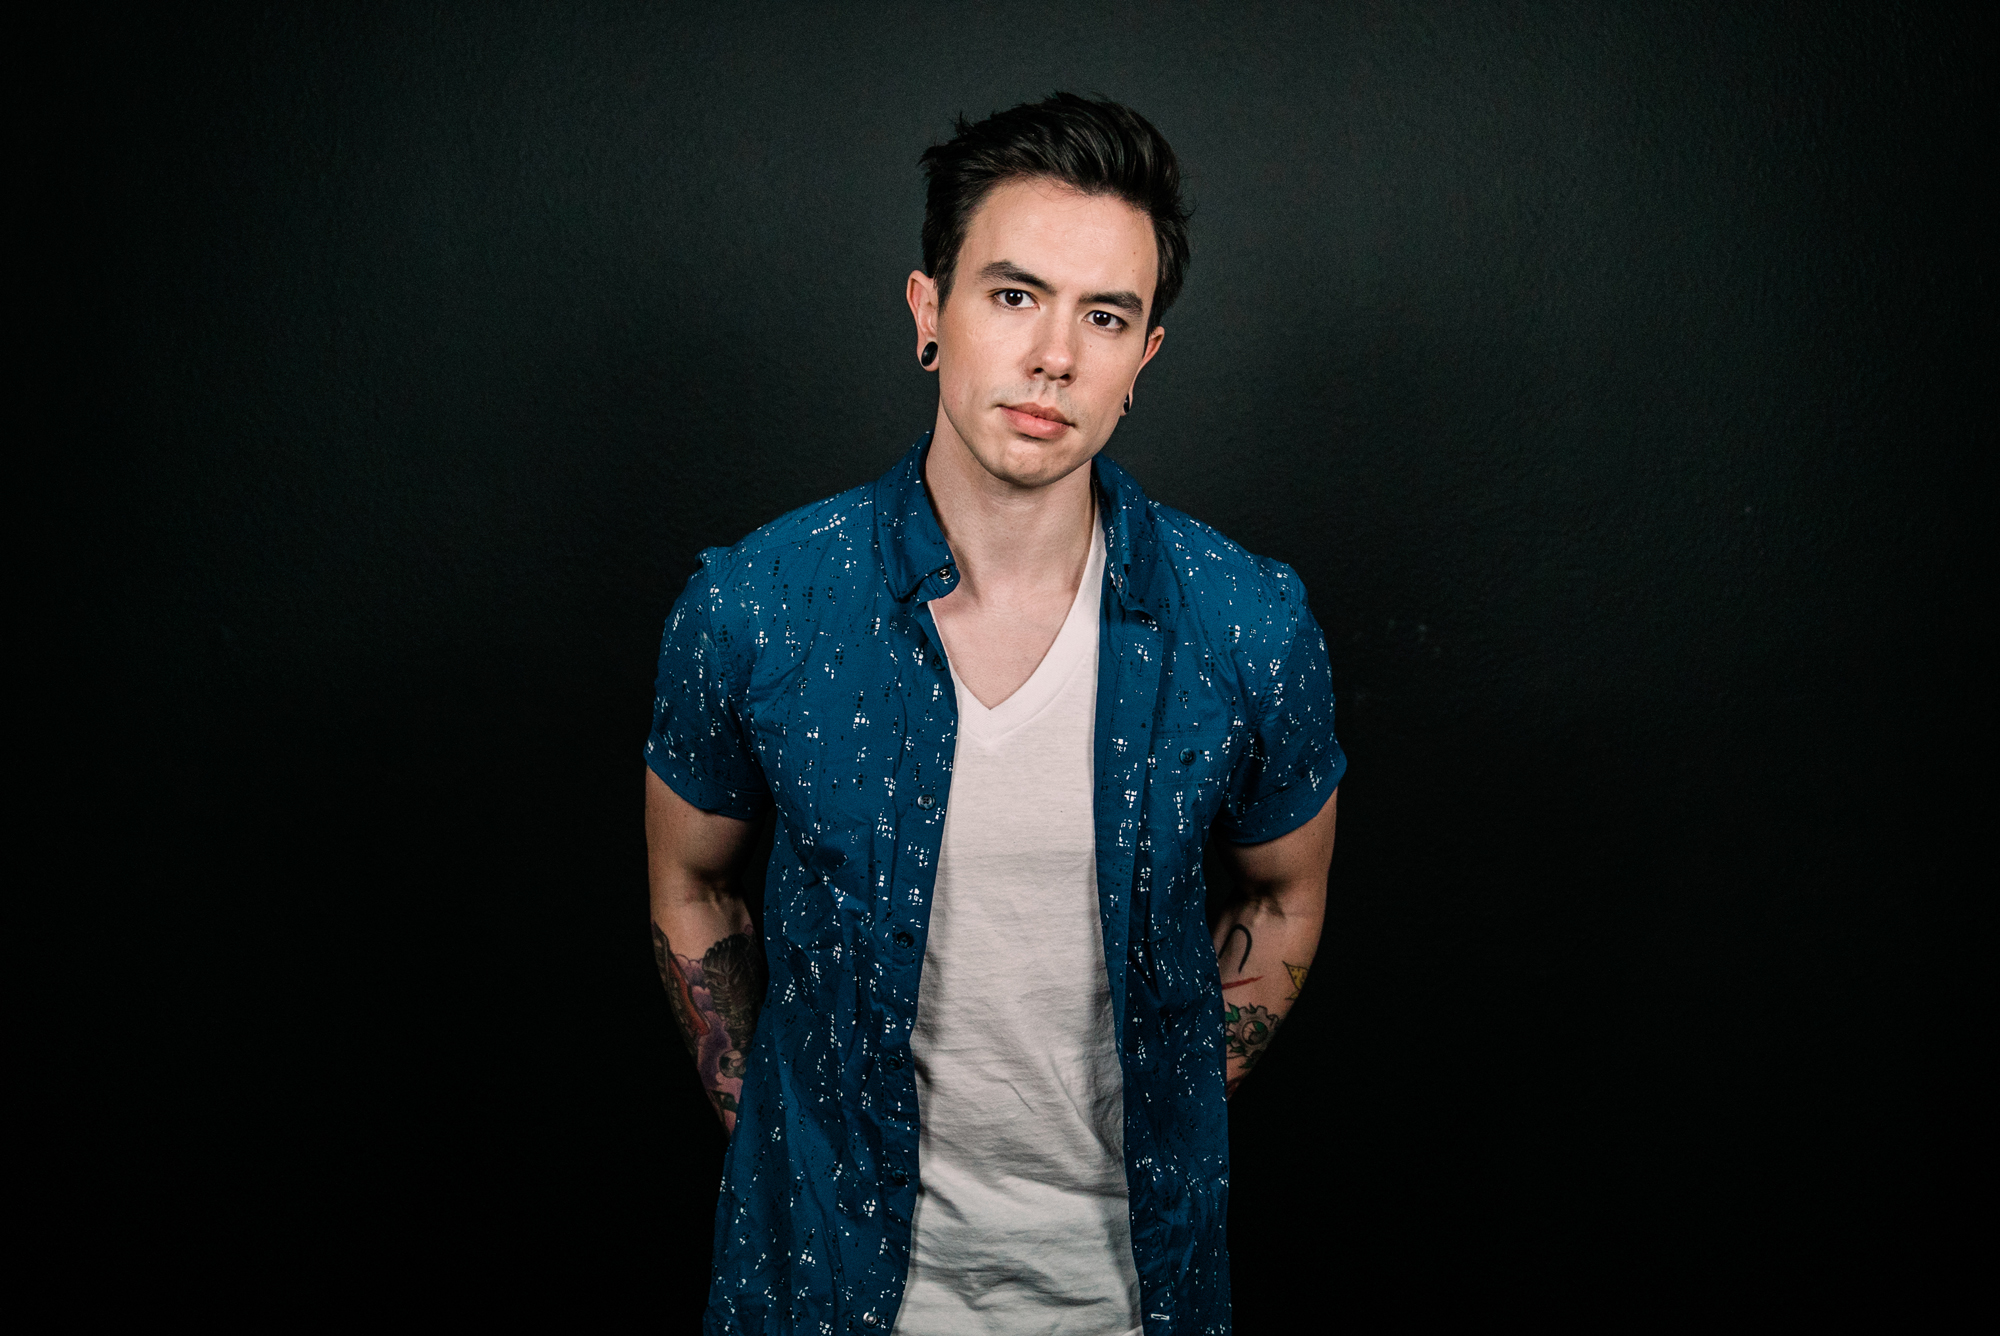 EXCLUSIVE: NateWantsToBattle takes us track by track through 'Paid In Exposure'